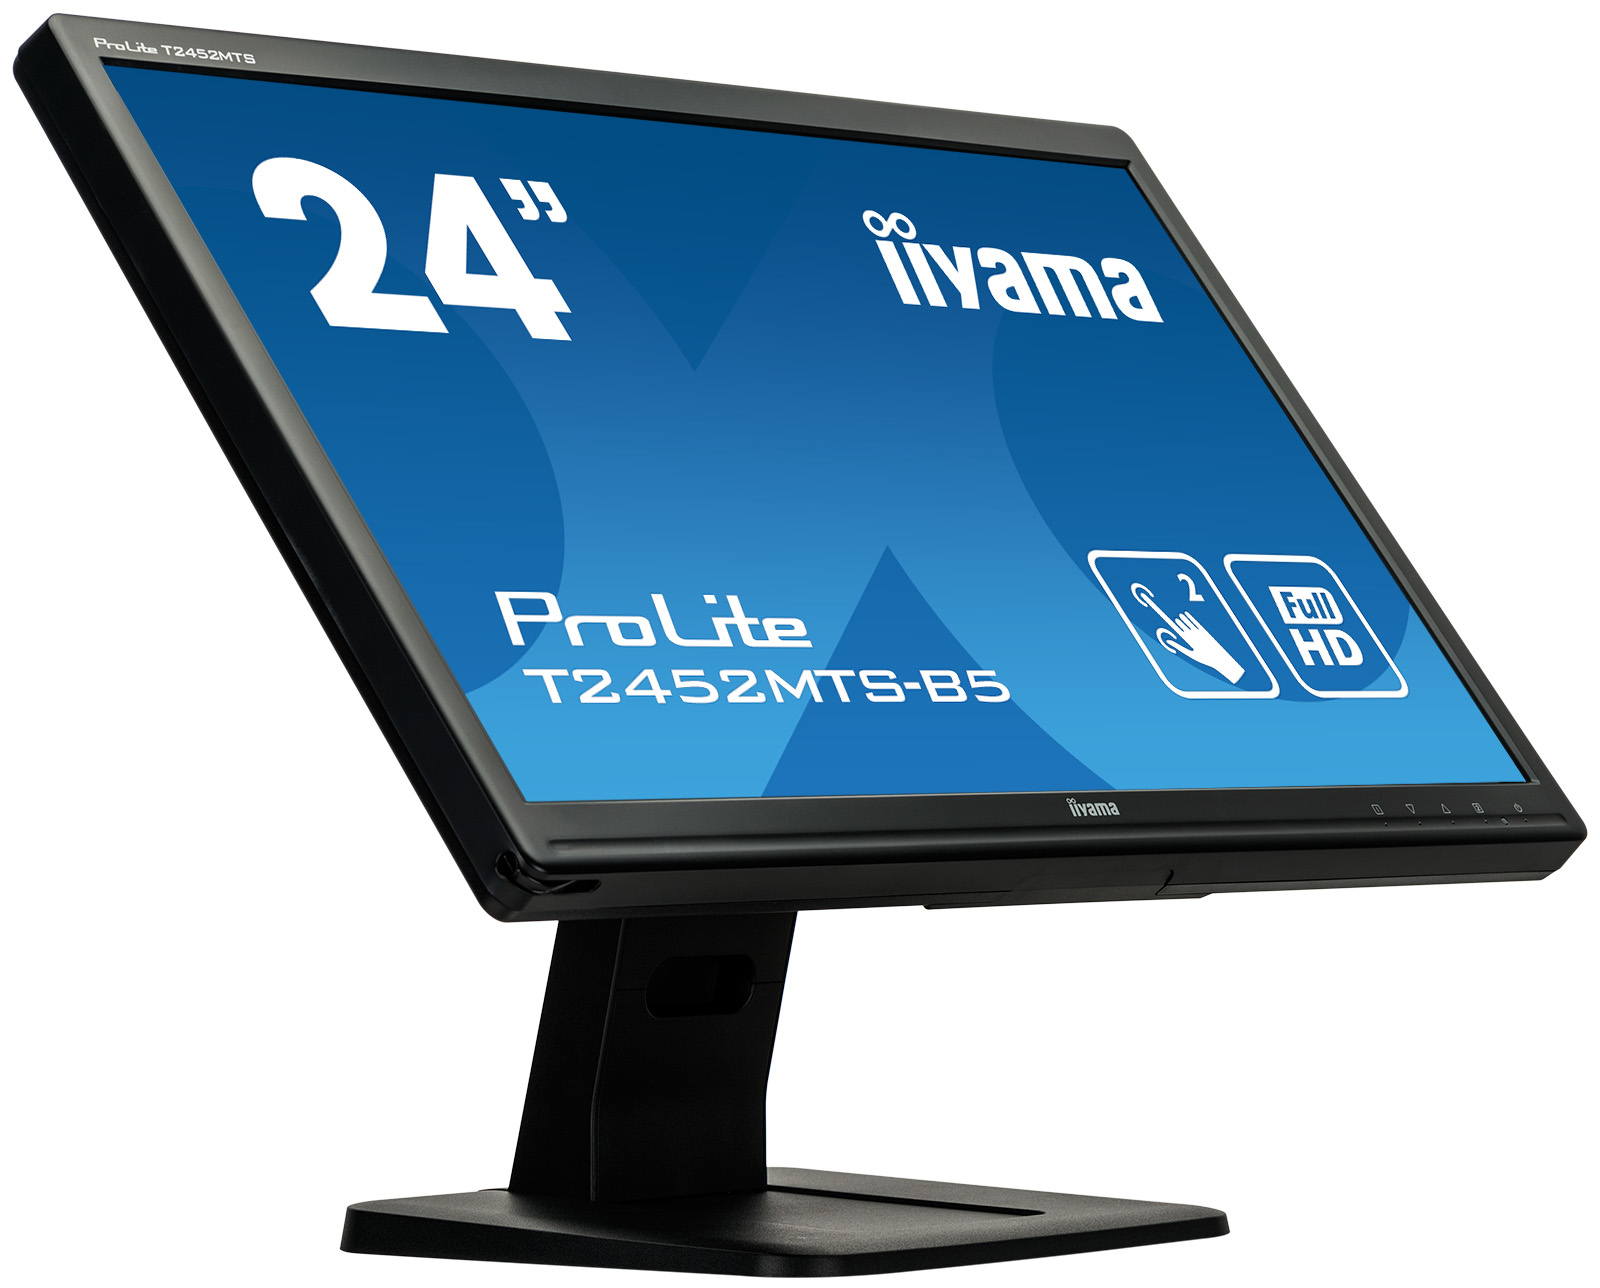 IIYAMA T2452MTS-B5 ProLite MON 24in TN LED Dual Touch 1920x1080 2ms Speakers HDMI VGA DVI